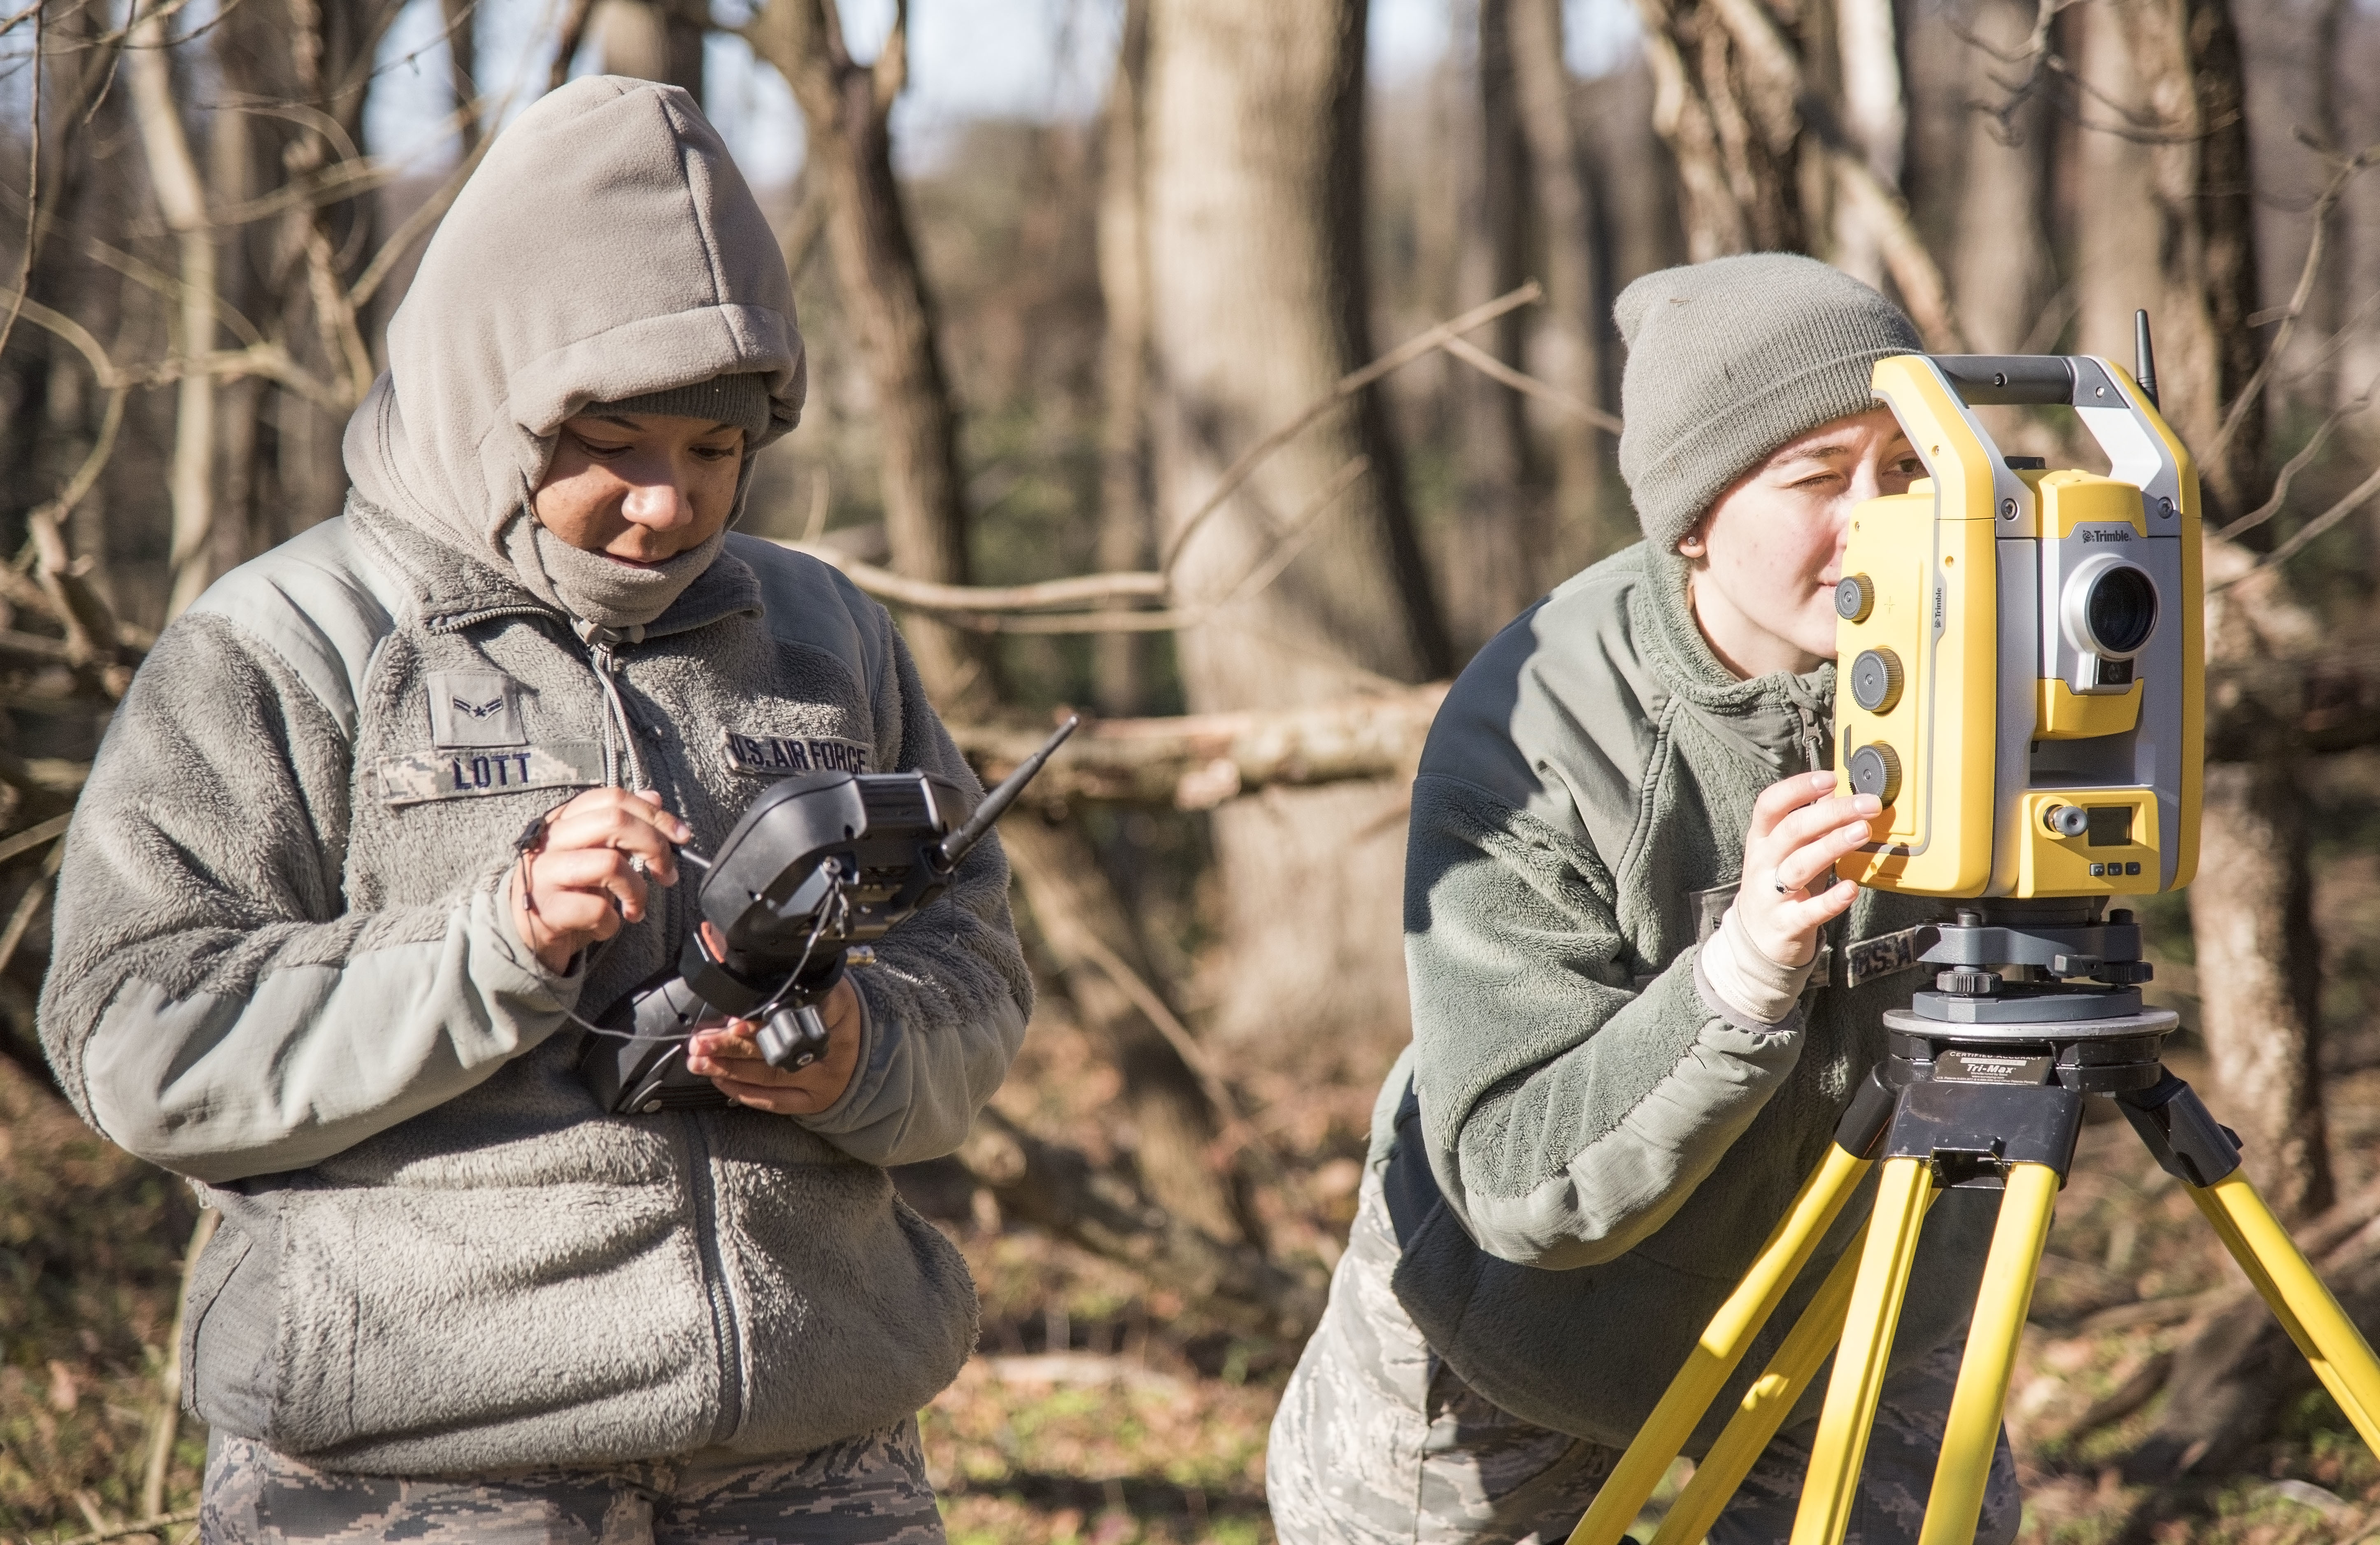 436th CES hones aircraft mishap surveying skills > Dover Air Force